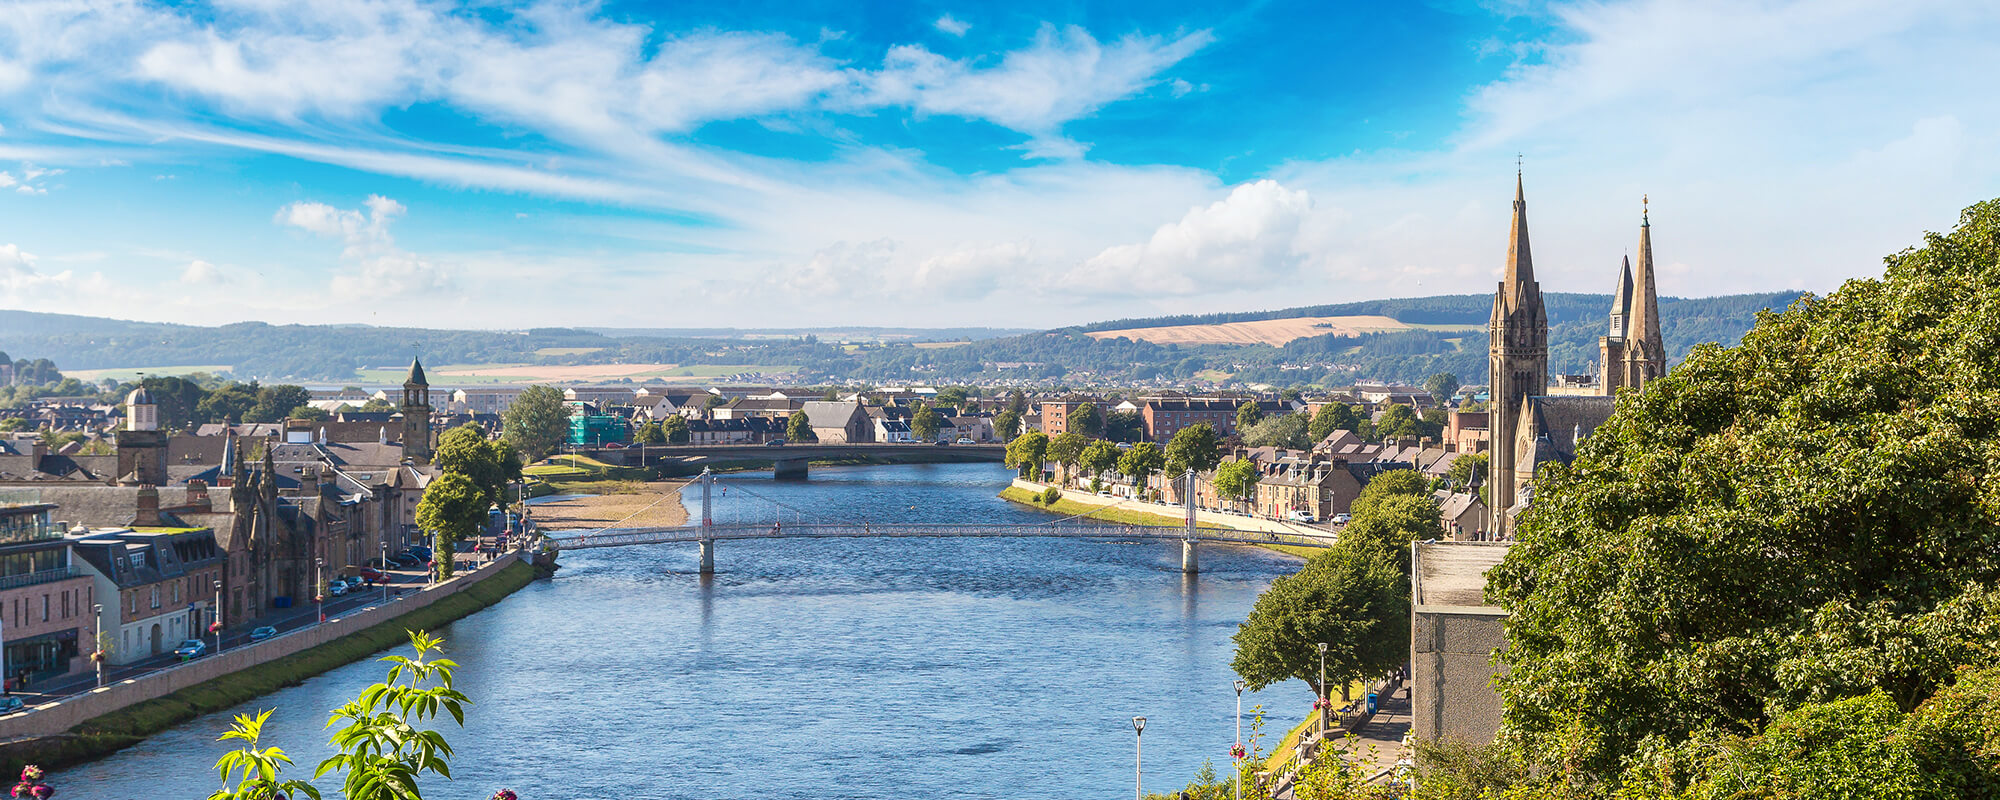 Overlooking Inverness